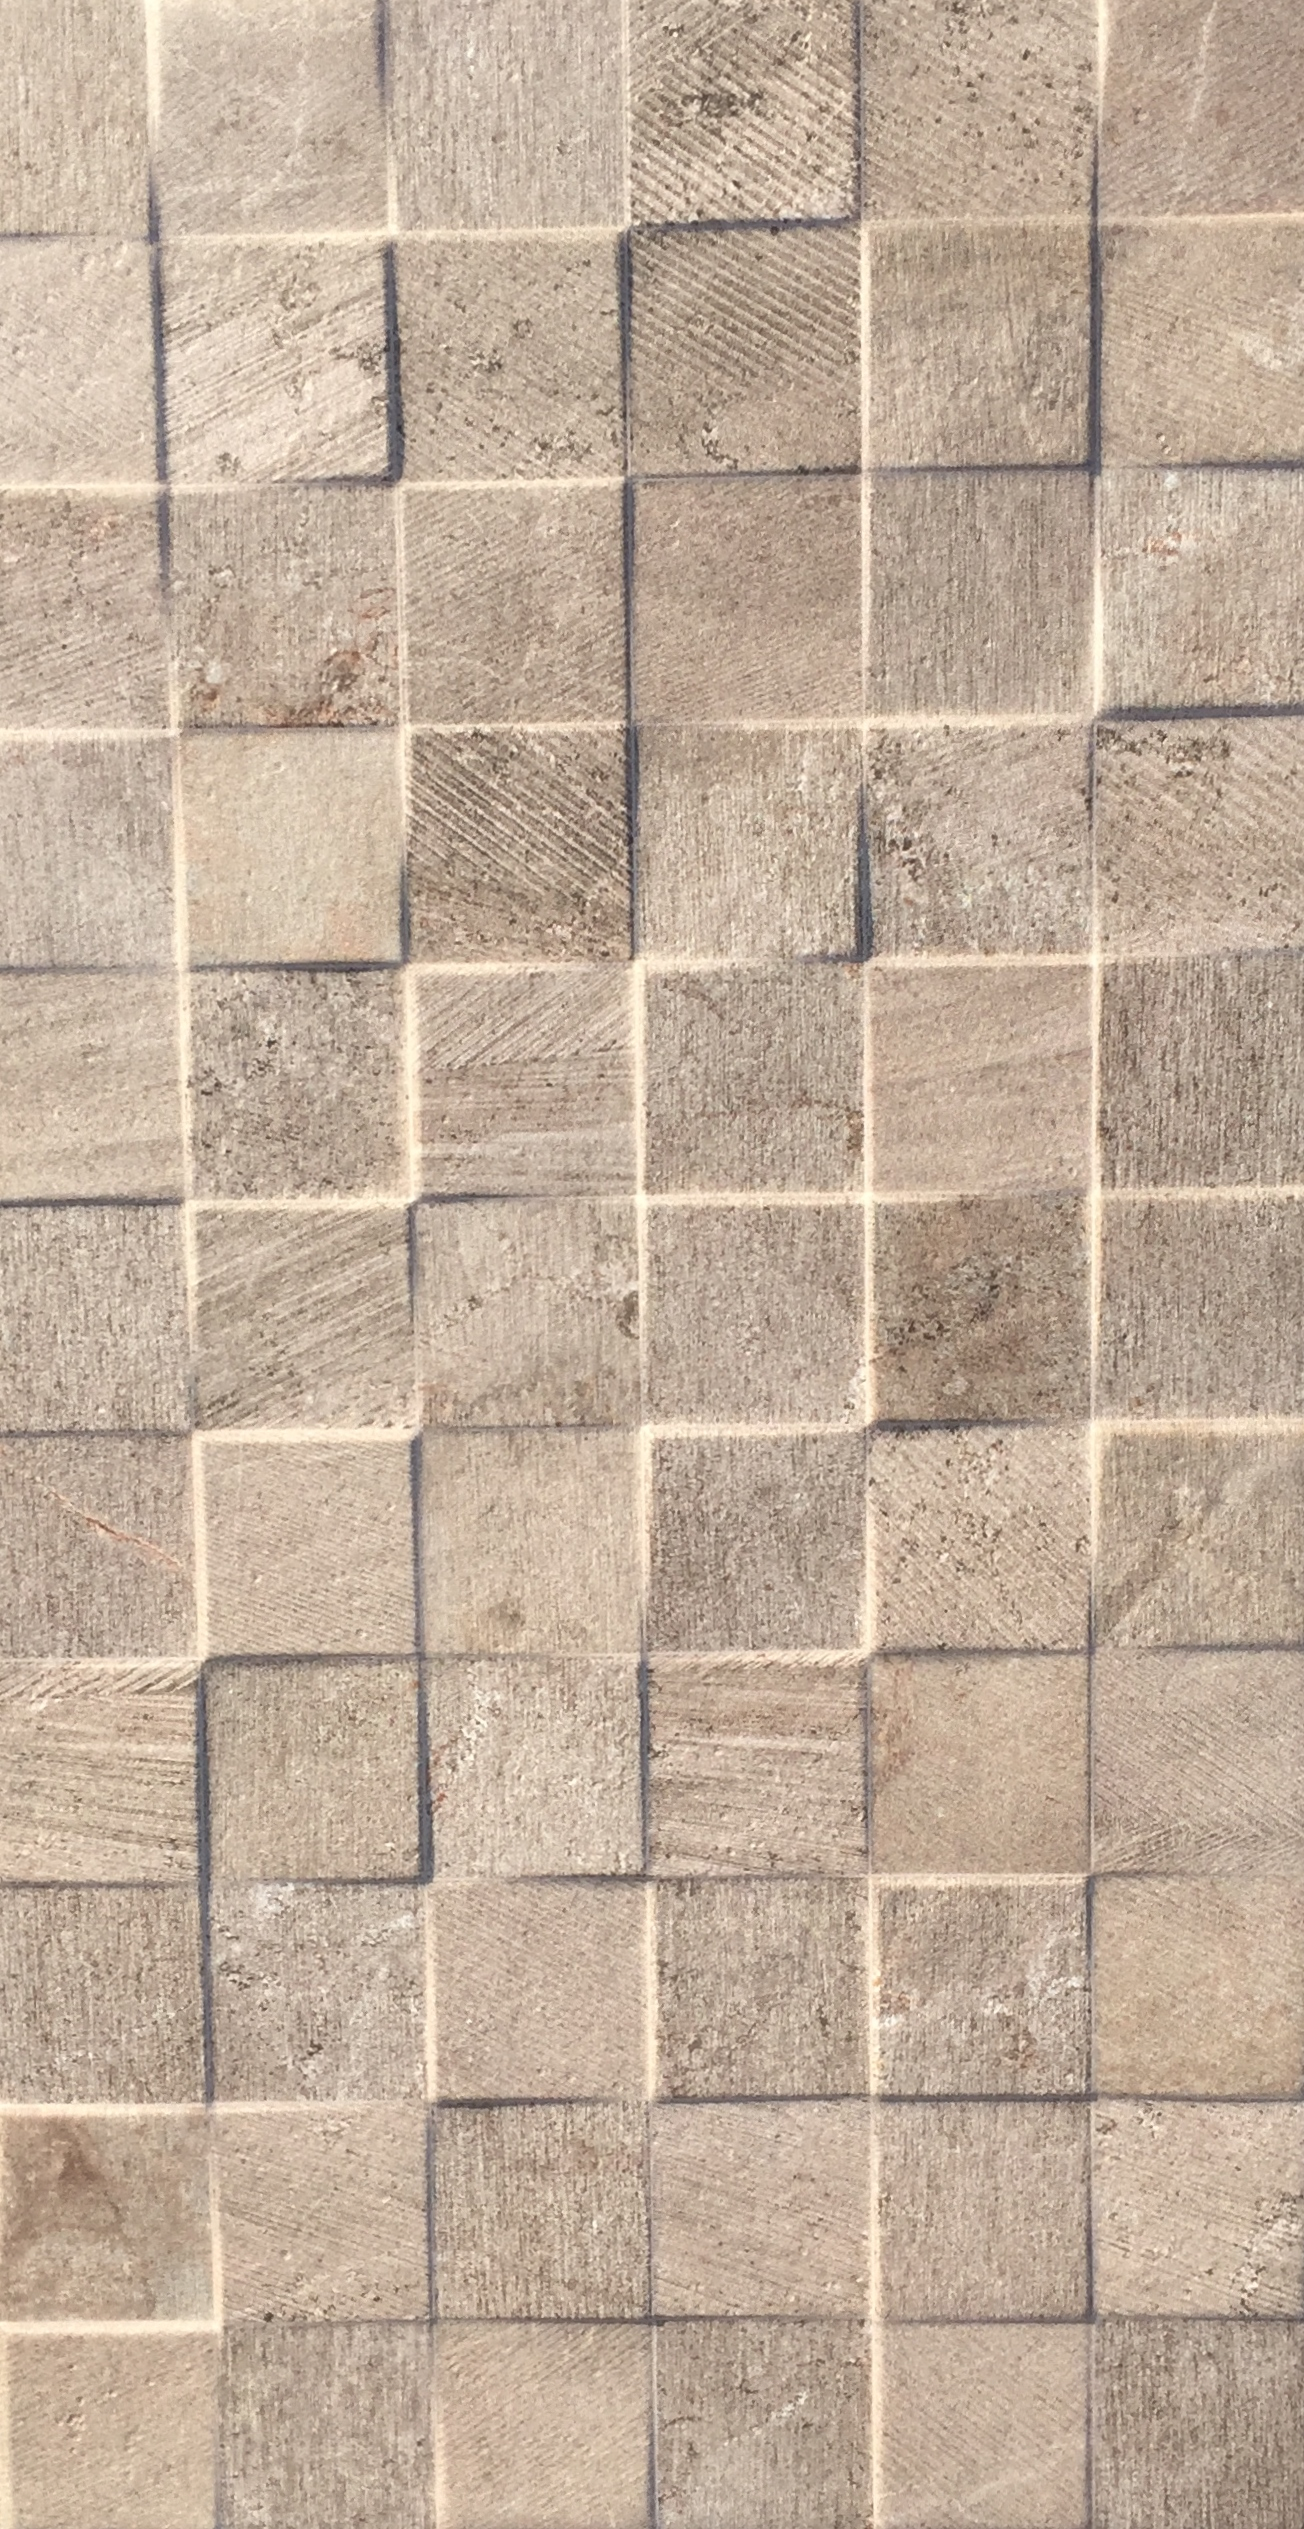 Mosaico rodano taupe tiles 2 go ltd for Carrelage taupe